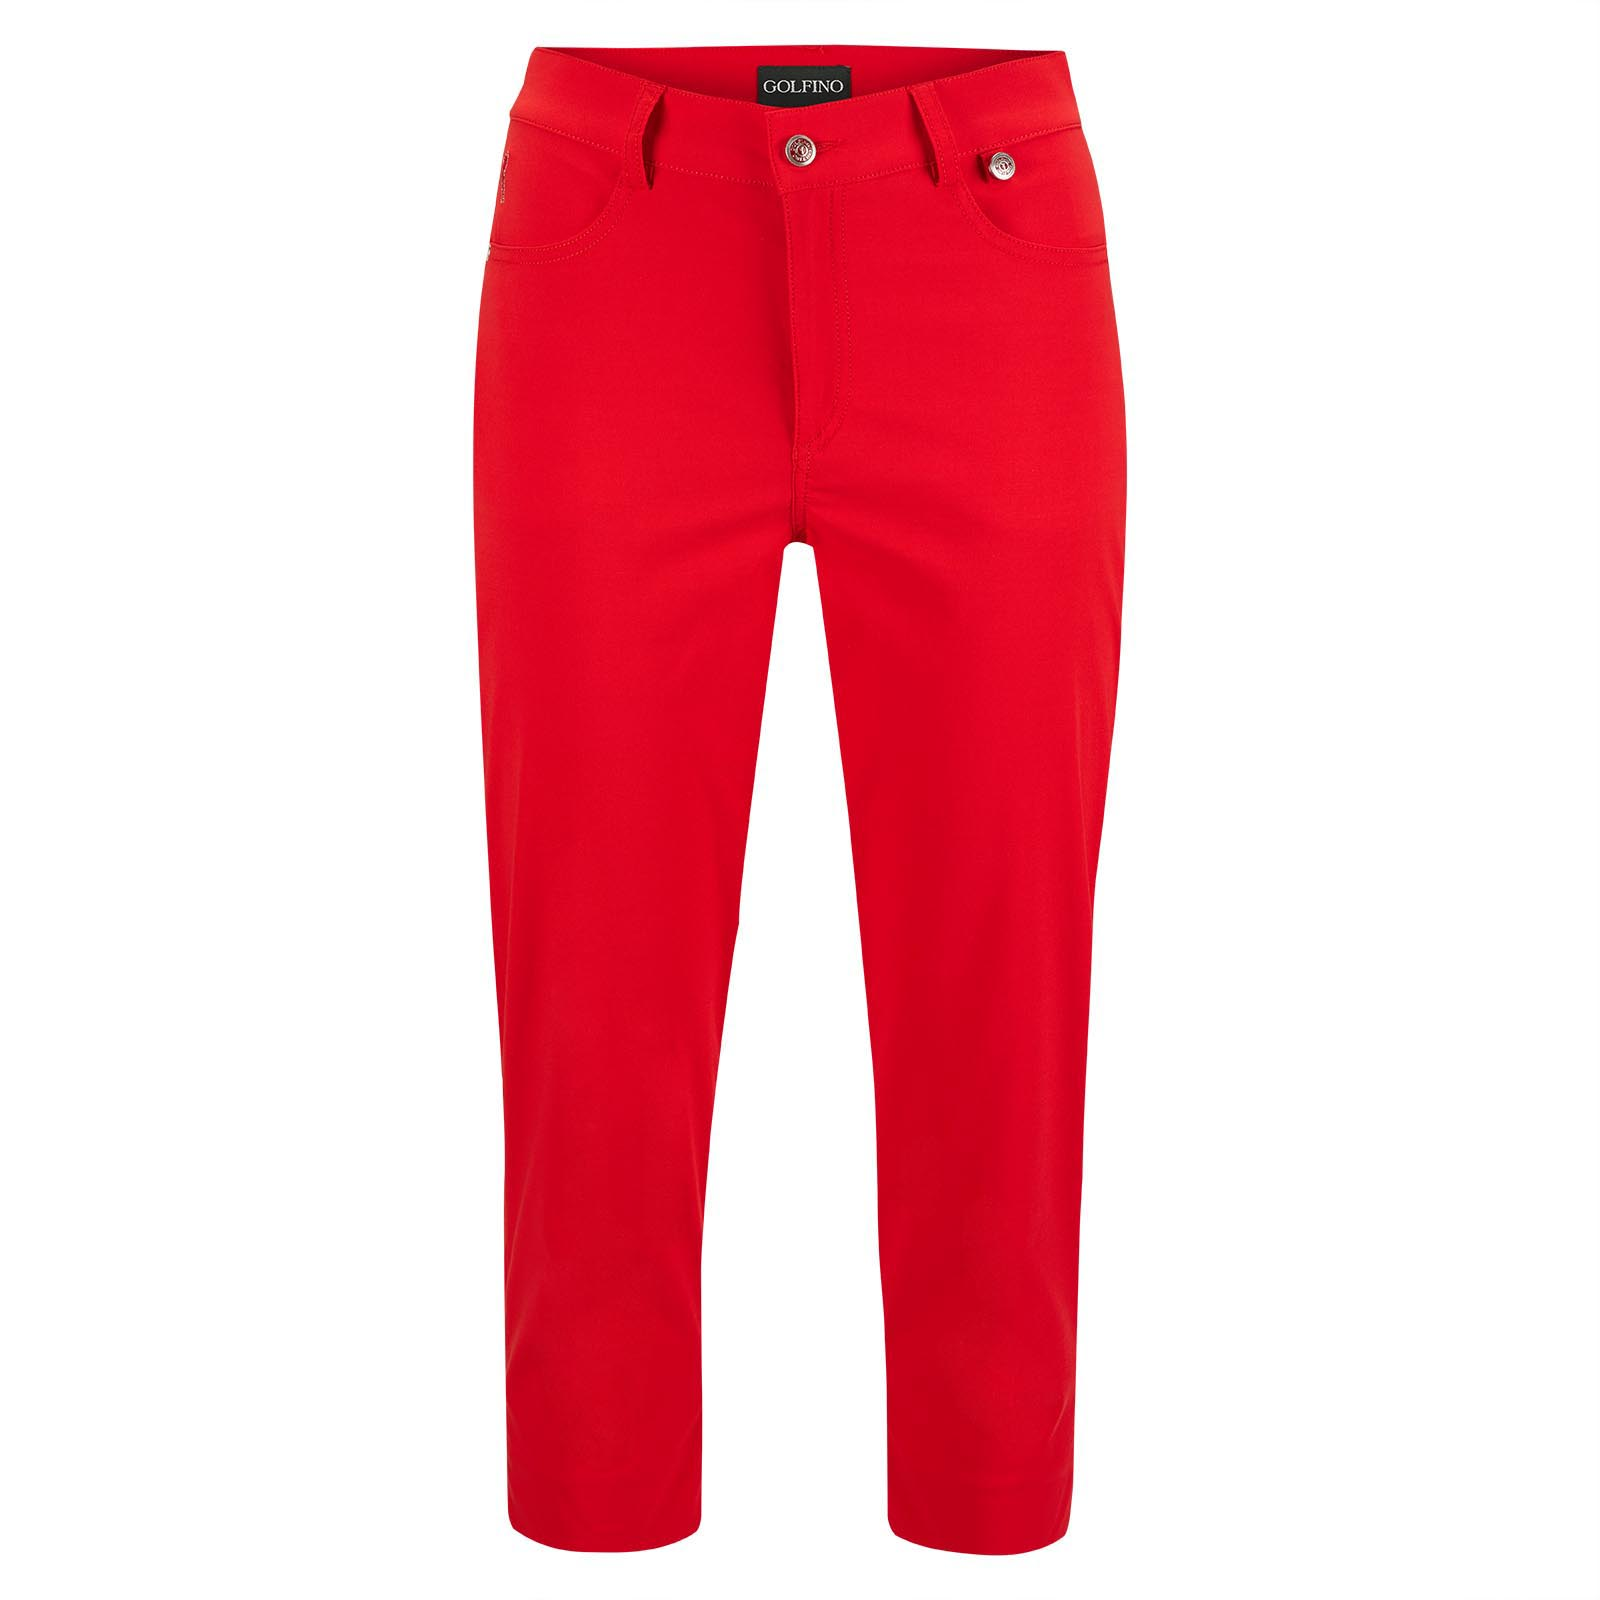 Ladies' Stretch Capri trousers with UV protection